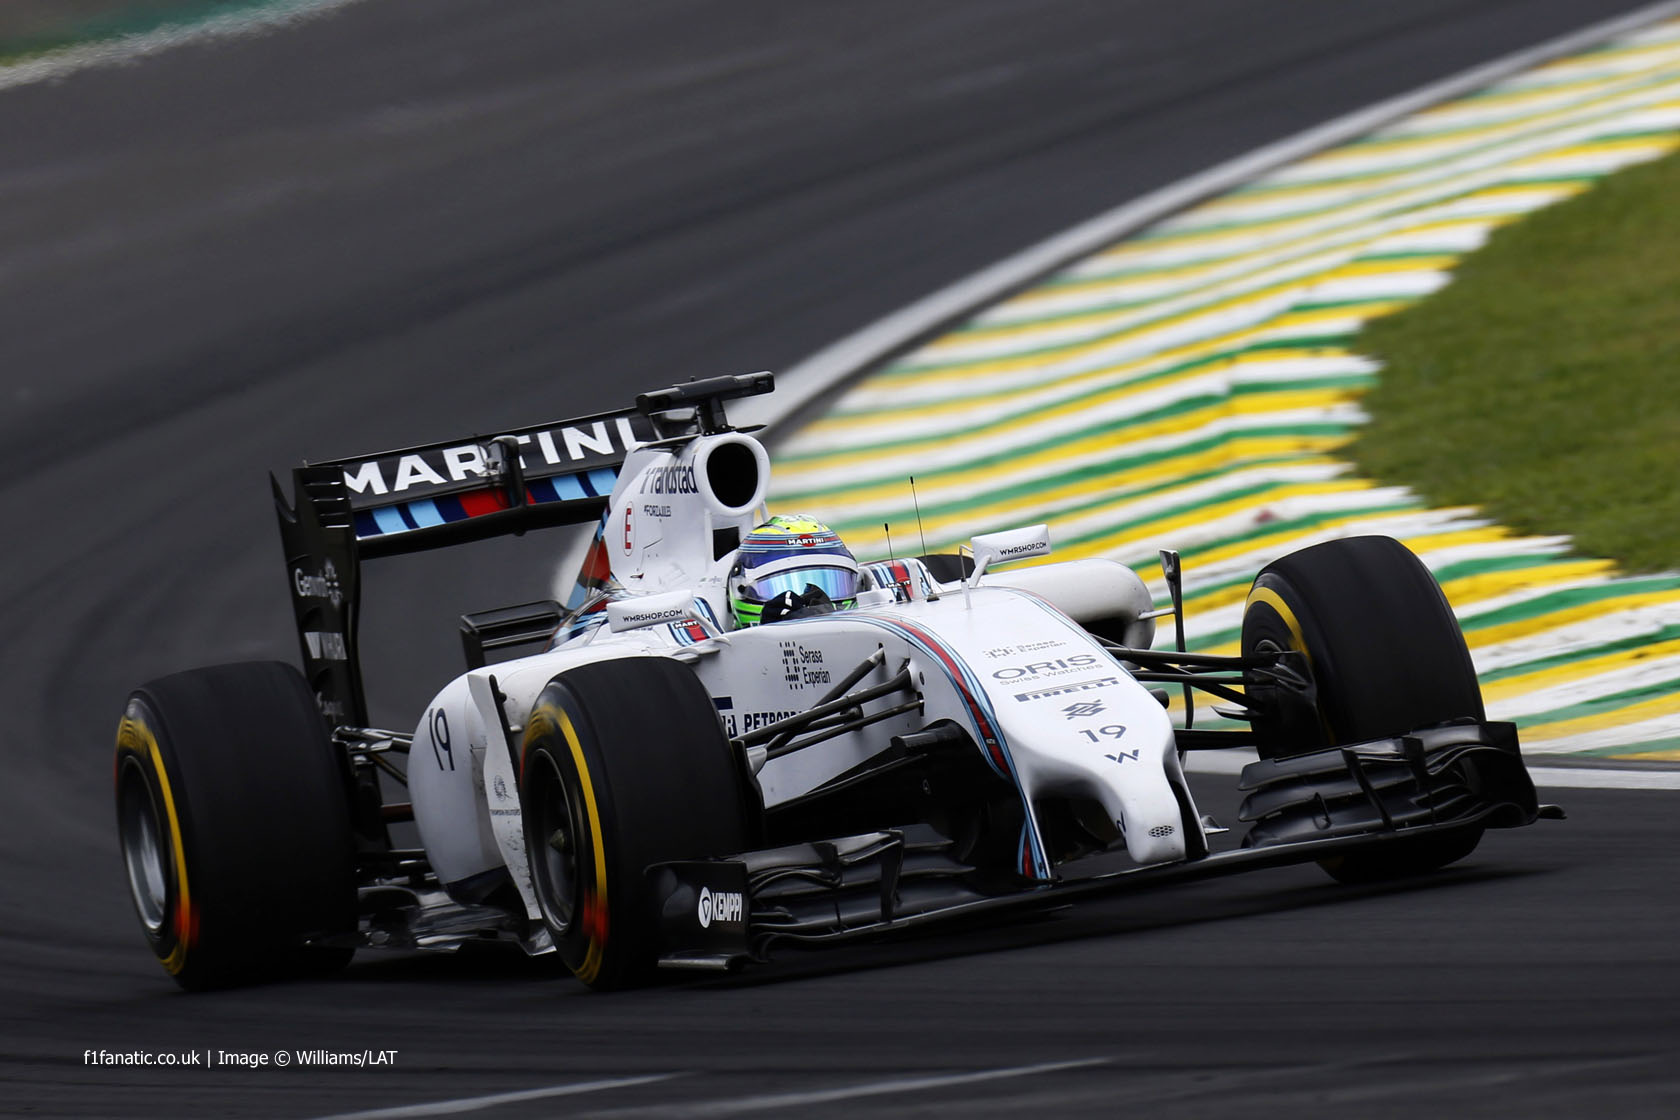 Felipe Massa, Williams, Interlagos, 2014